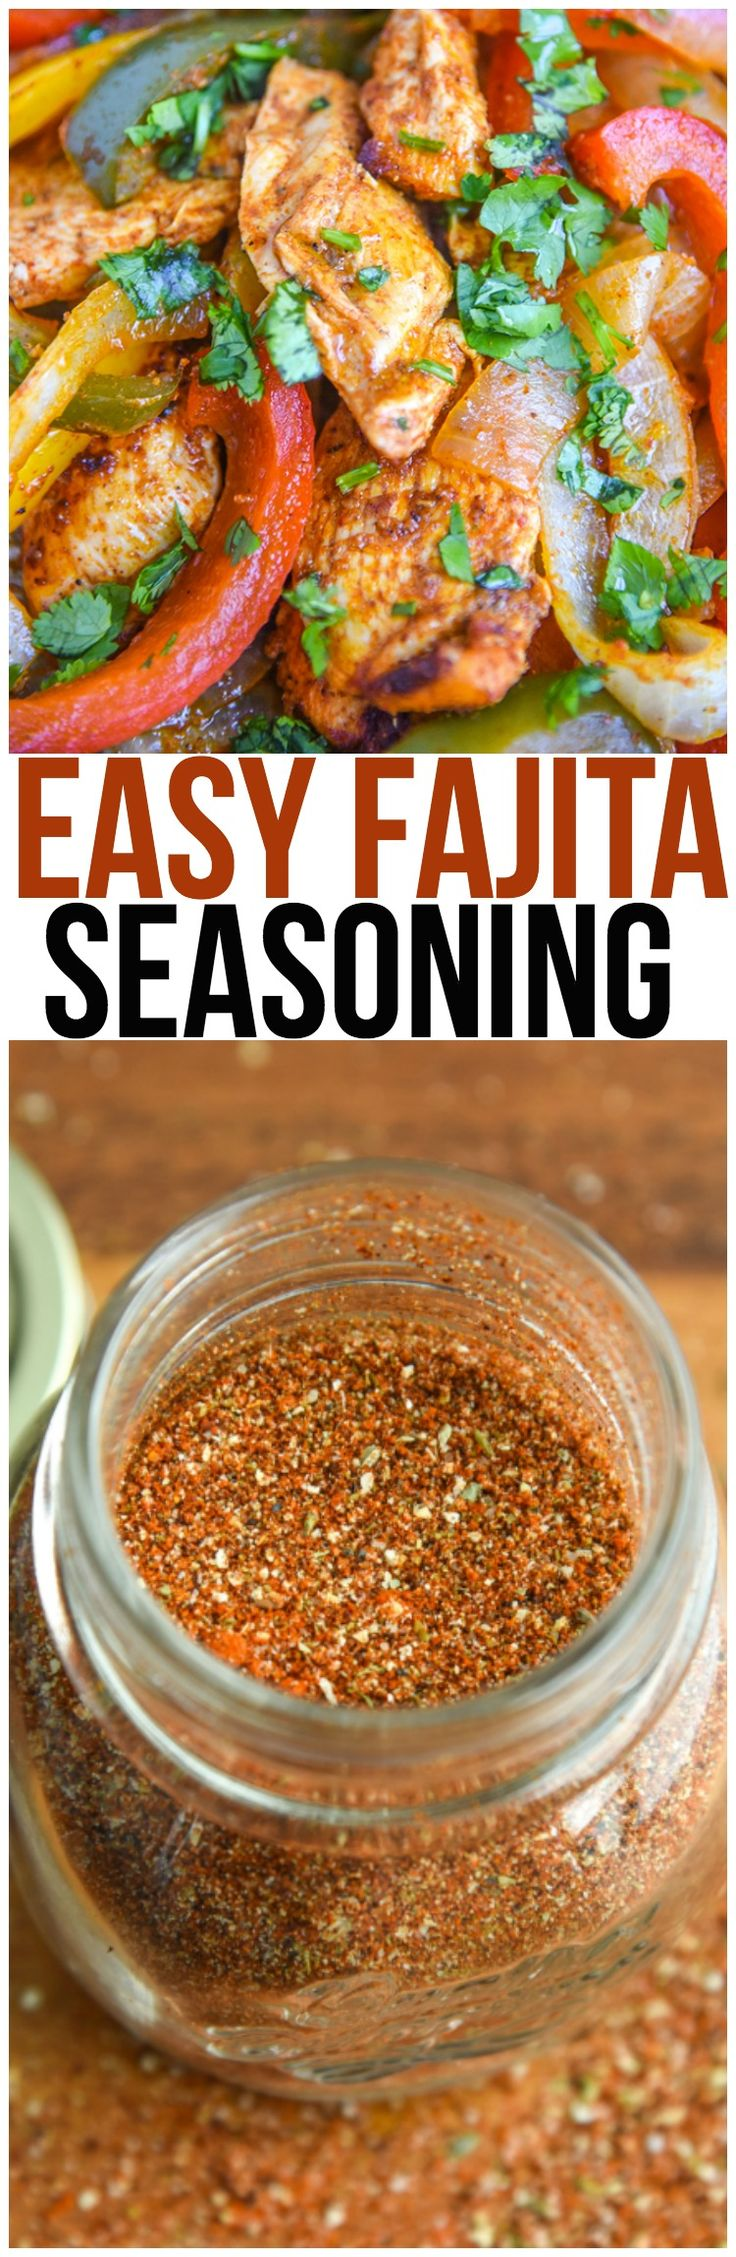 Make your own homemade fajita seasoning recipe instead of using a seasoning packet! It's perfect for chicken fajitas, steak fajitas, shrimp fajitas, or even vegetarian fajitas. via @CourtneysSweets